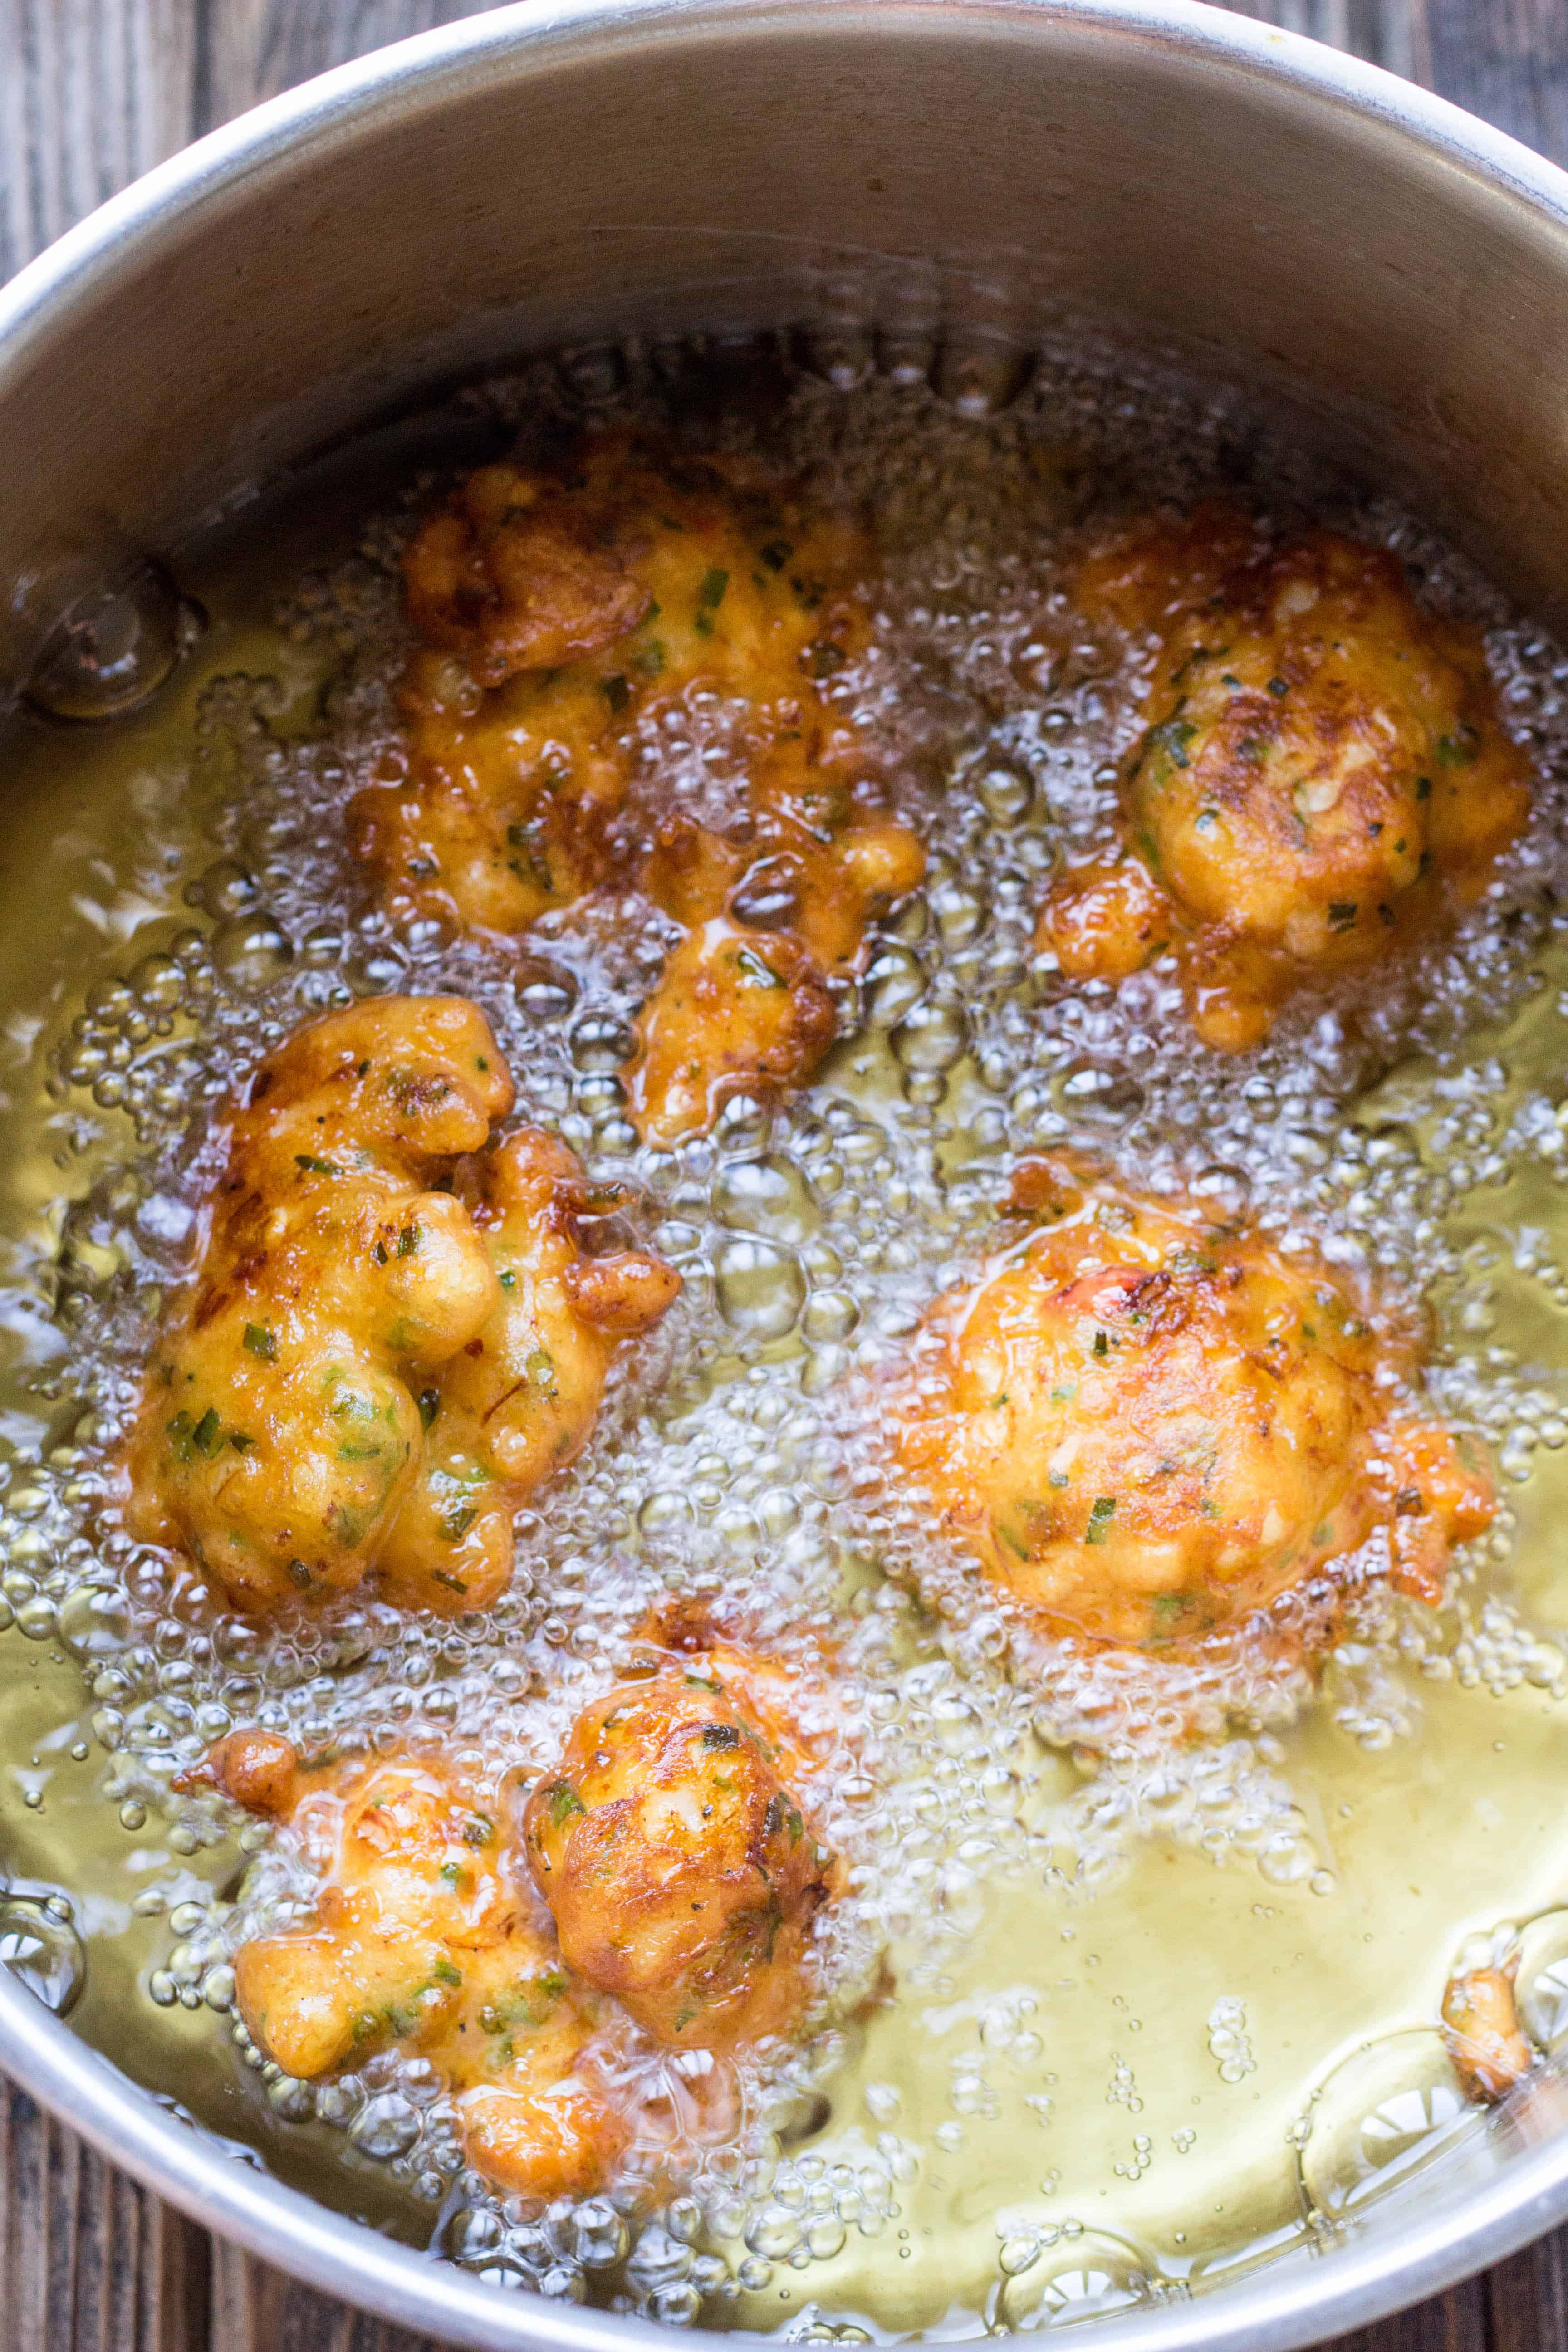 A skillet filled with oil bubbling around lobster corn fritters.